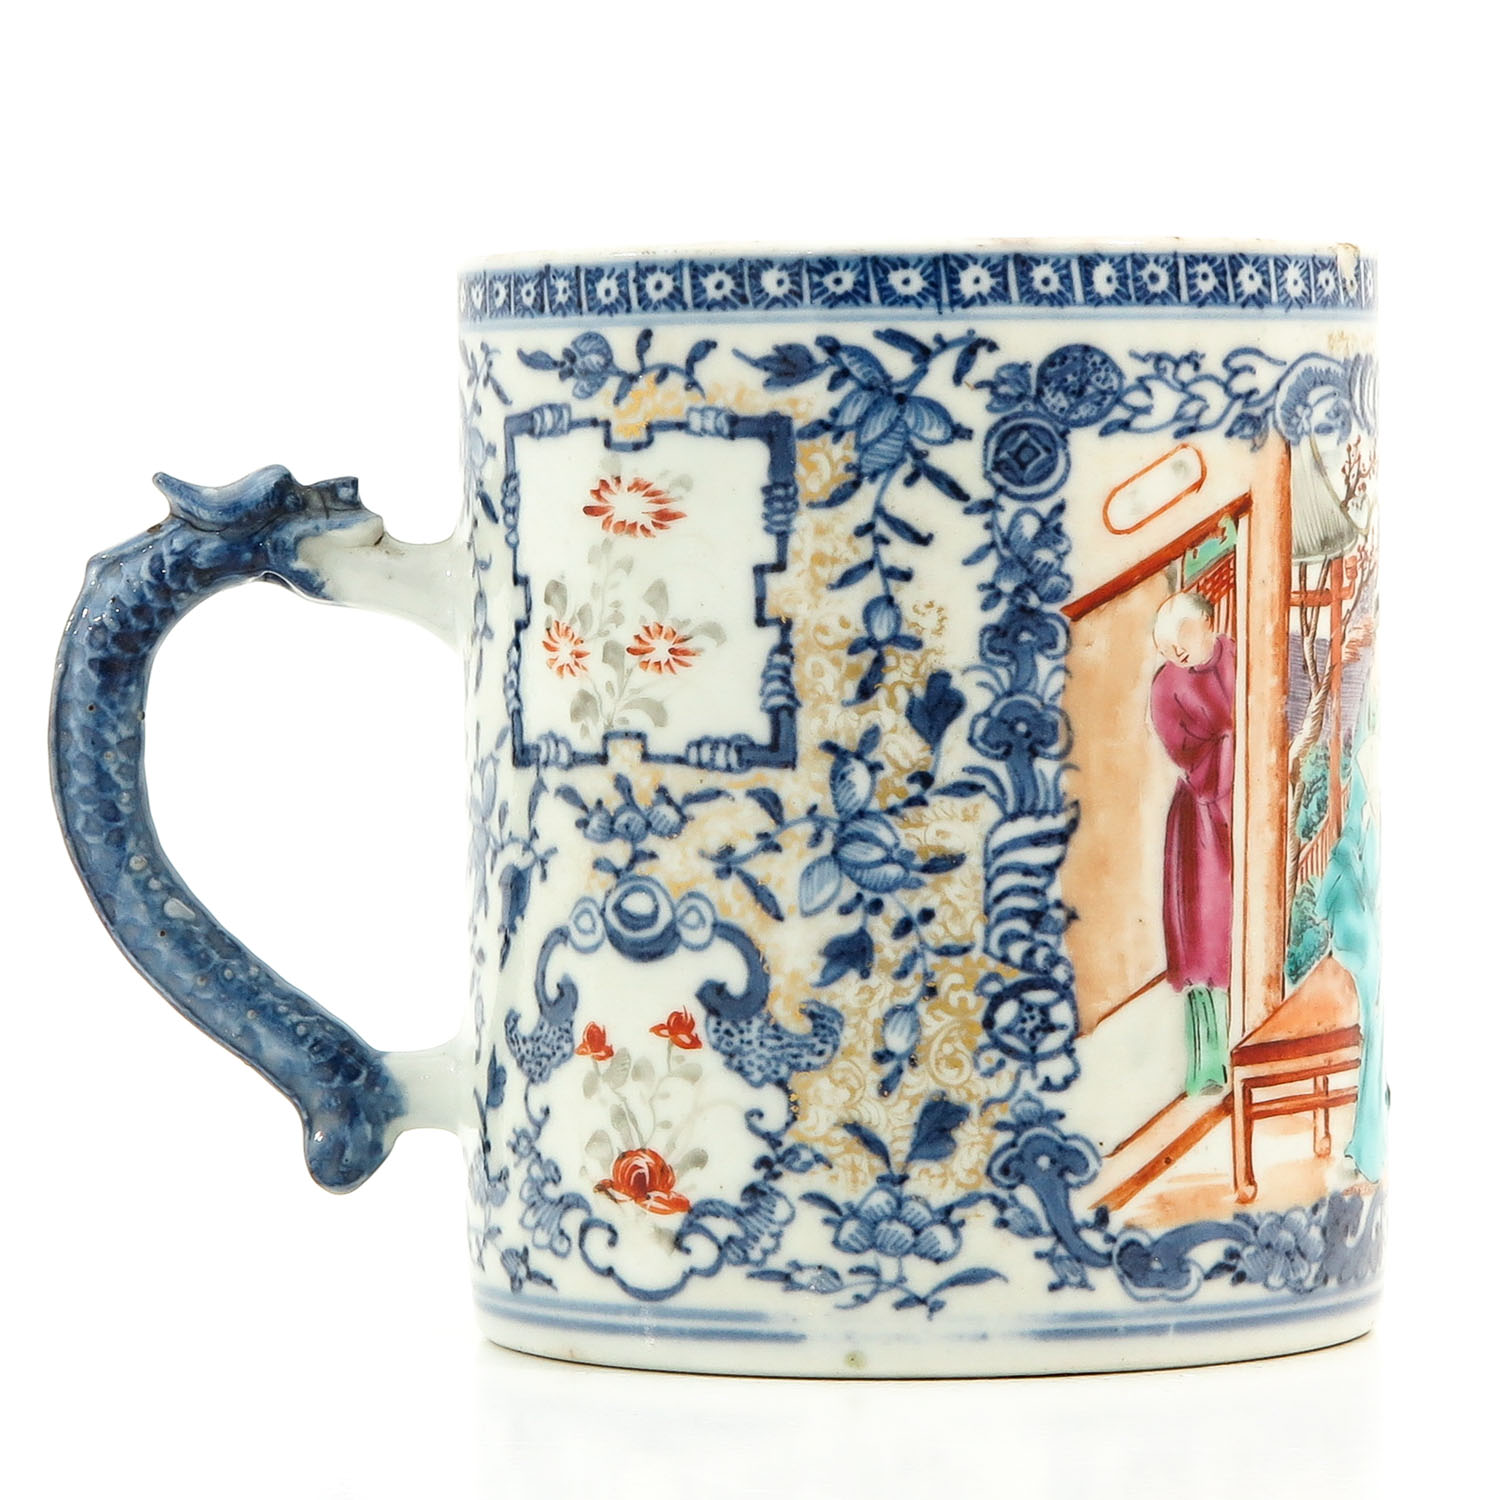 A Polychrome Decor Mug - Image 3 of 10